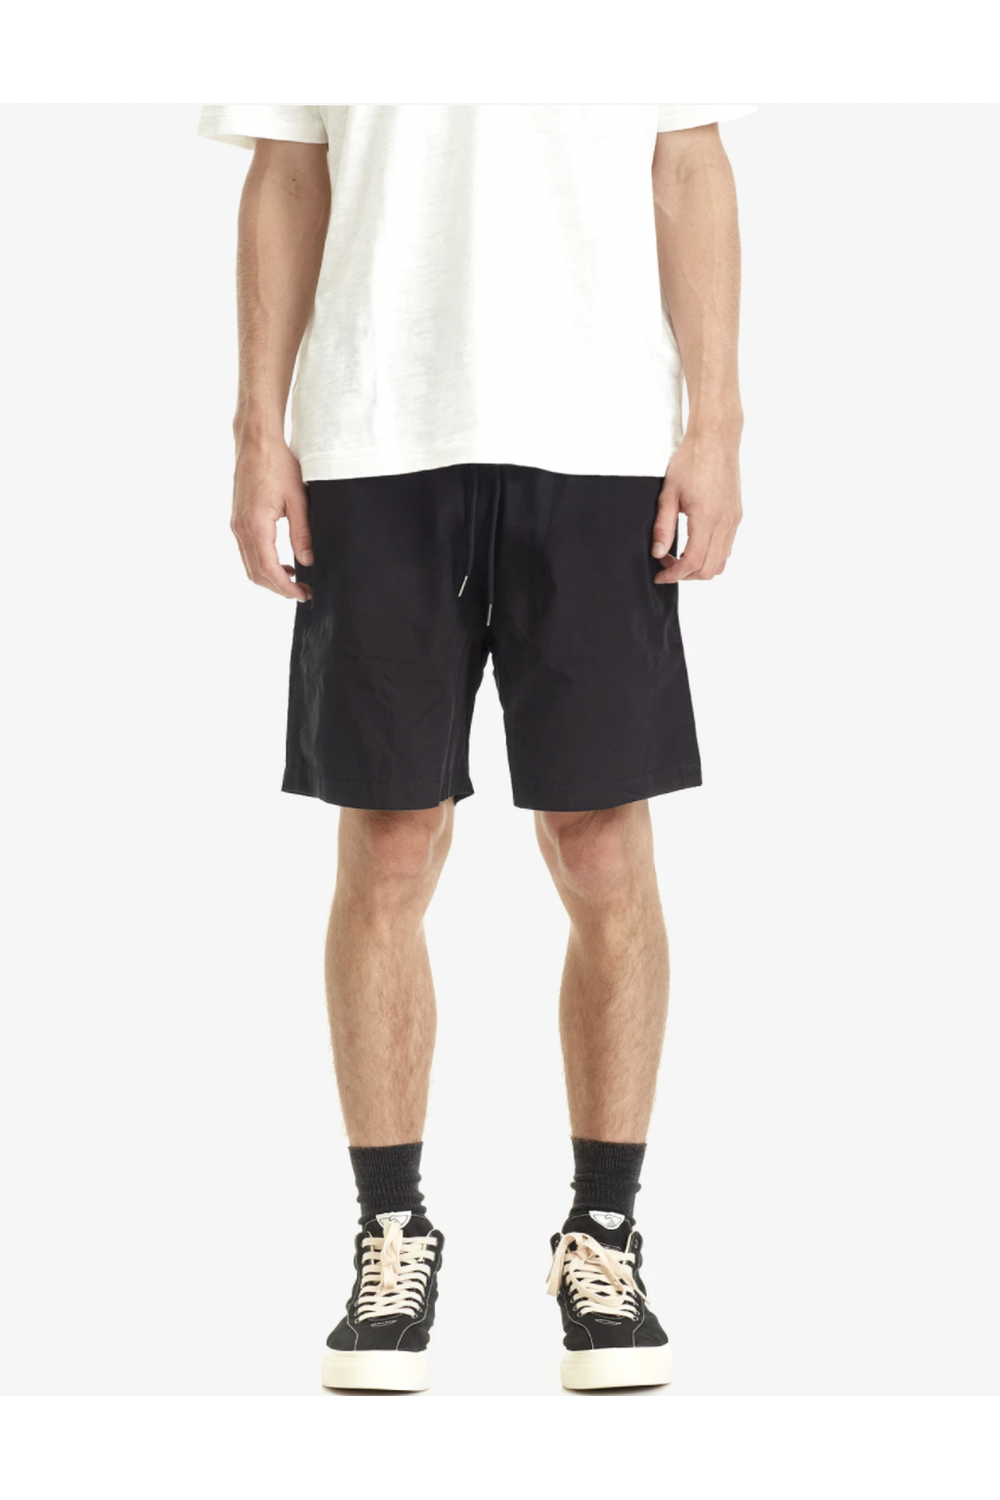 Flight Short/ Black | COMMONERS | Mad About The Boy